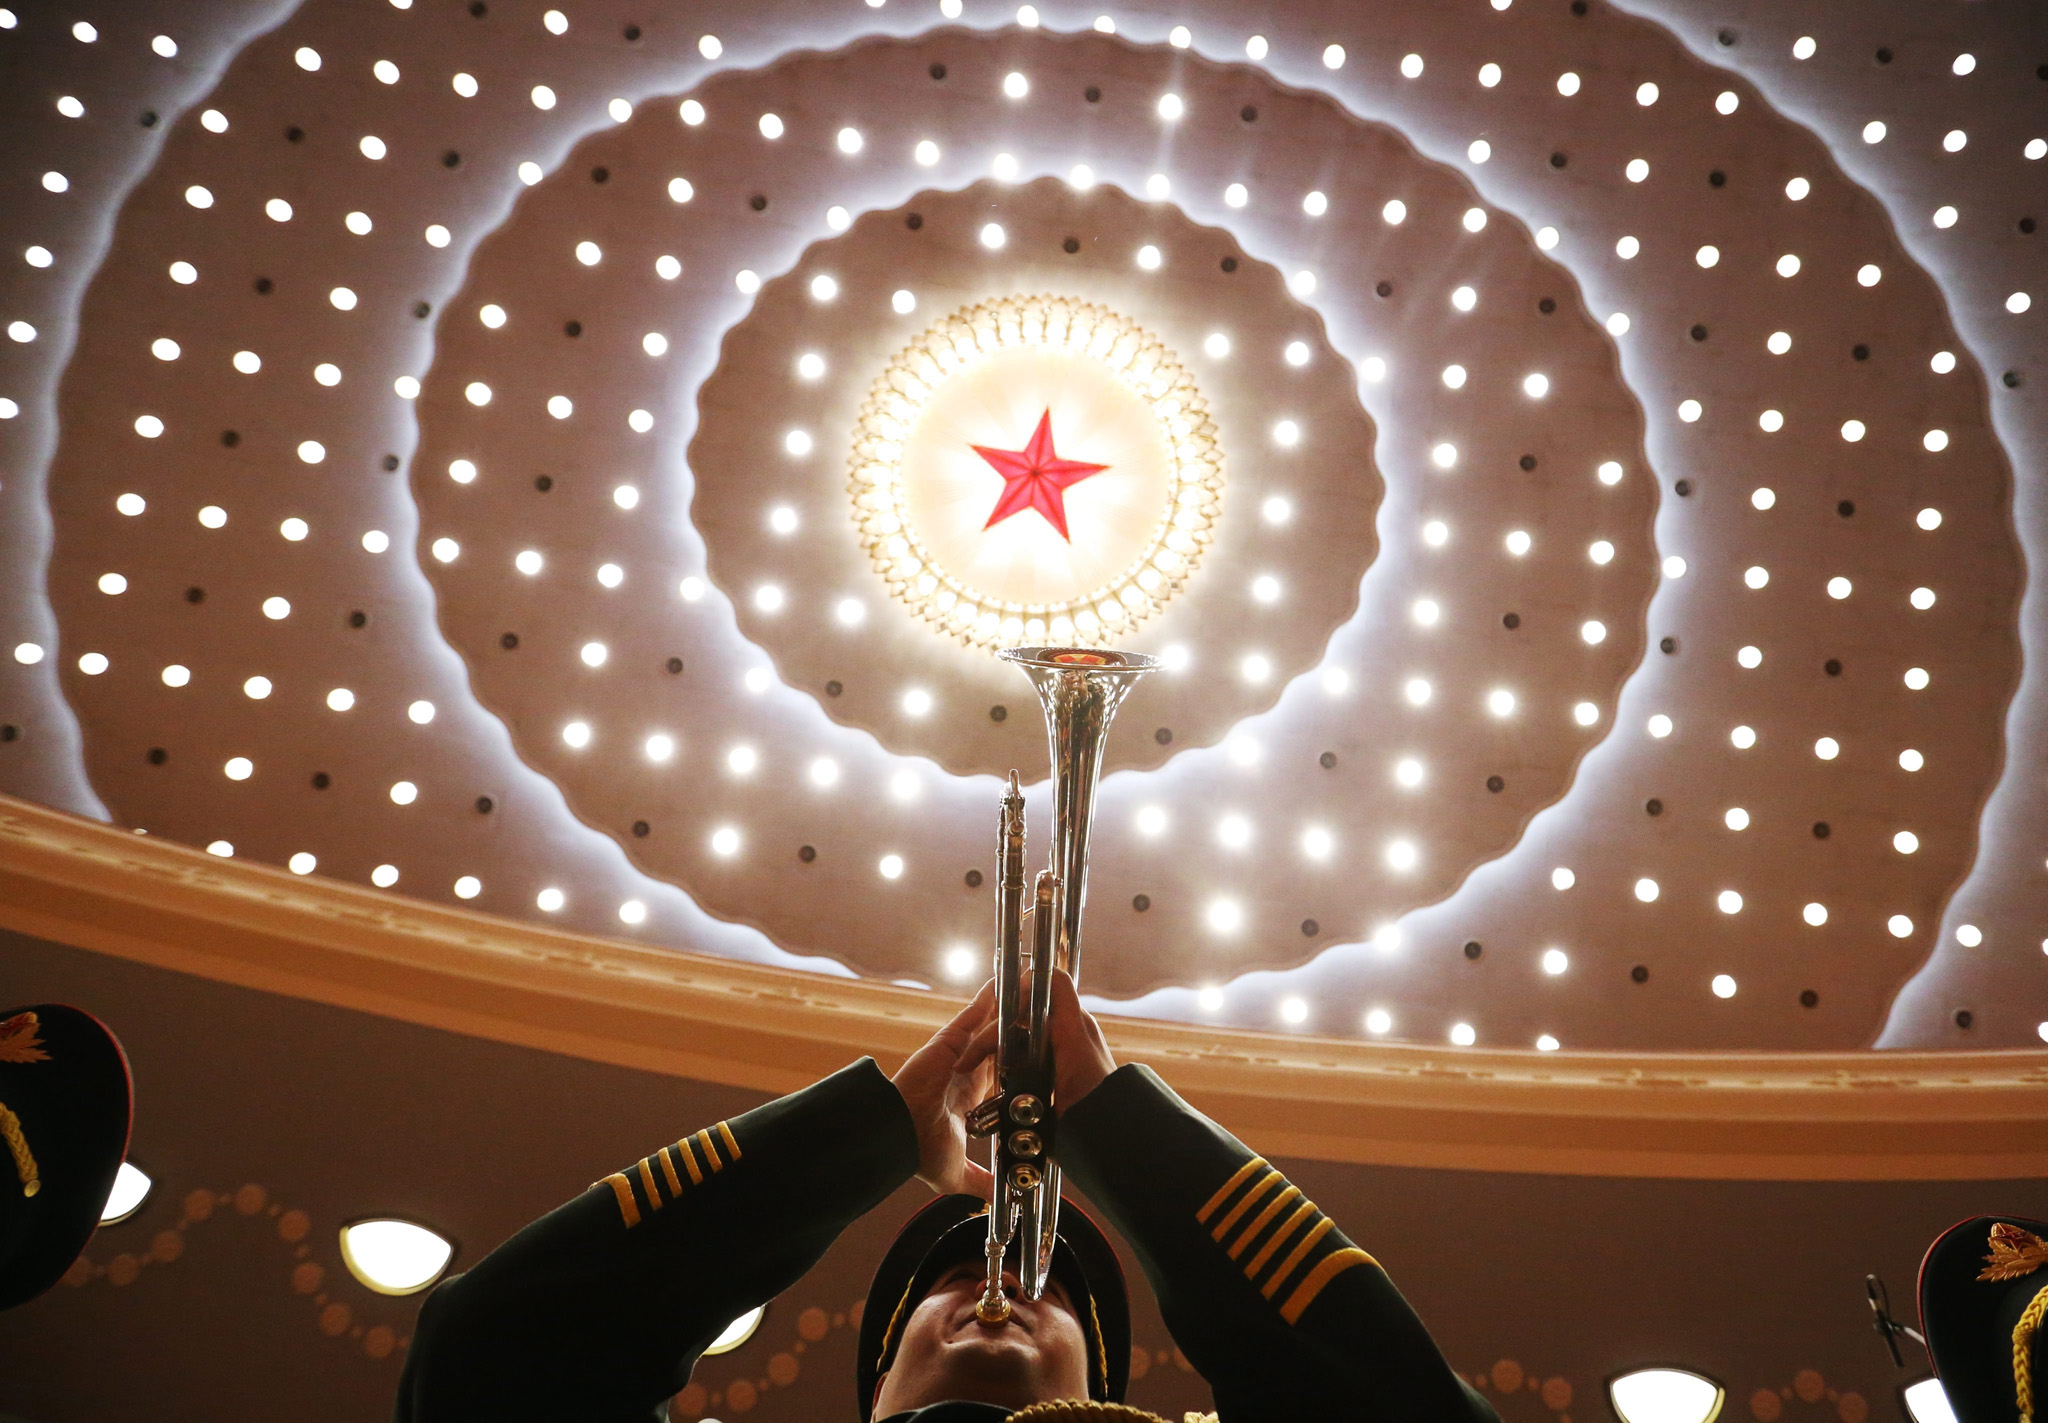 epaselect epa05400625 A Chinese military band member is seen playing his trumpet below the Communist Star before a celebration ceremony of the 95th anniversary of Founding the Communist Party of China at the Great Hall of the People (GHOP) in Beijing, China, 01 July 2016. China marks on 01 July the 95th anniversary of the formation of its ruling communist party with a grand ceremony at the GHOP.  EPA/HOW HWEE YOUNG